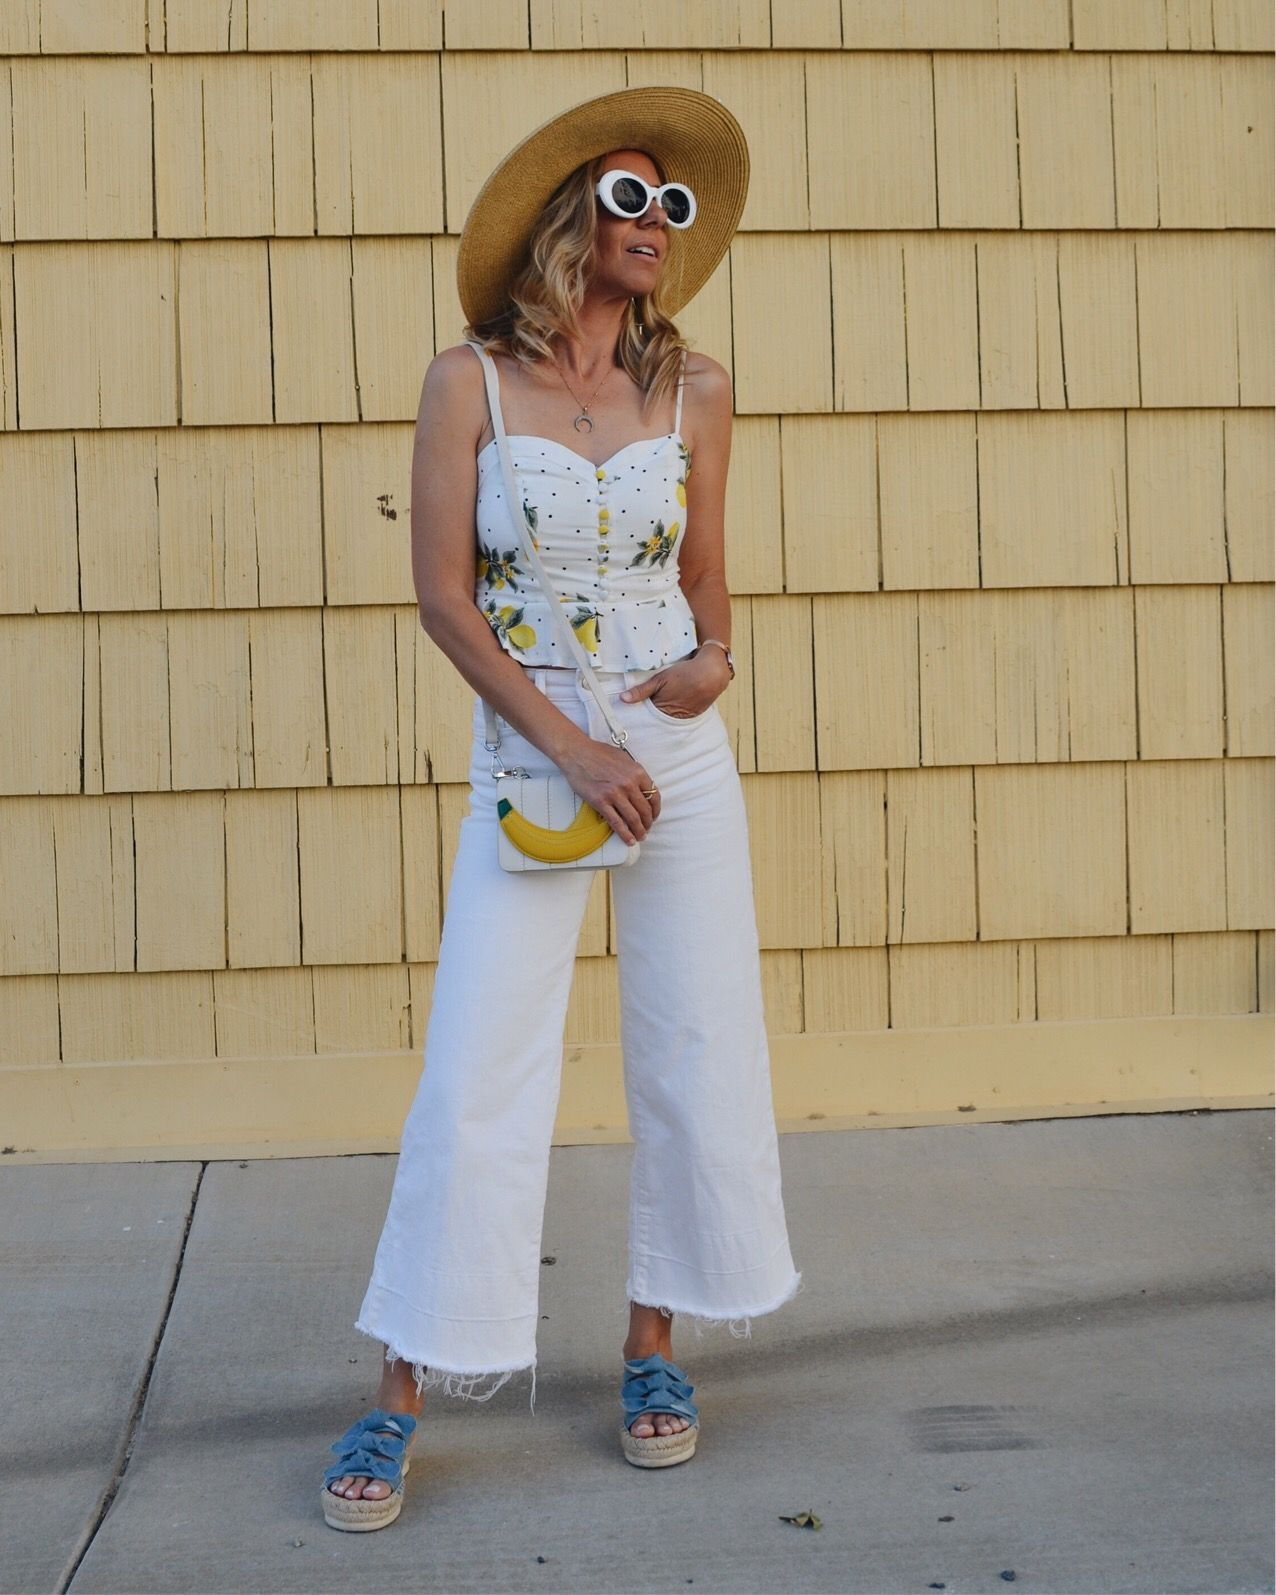 88ae8351c613 THE MUST HAVE SHOE TREND- PLATFORMS- Jaclyn De Leon Style + espadrille slip  on denim sandals + white culottes + lemon top + fruit inspired tank + straw  hat ...